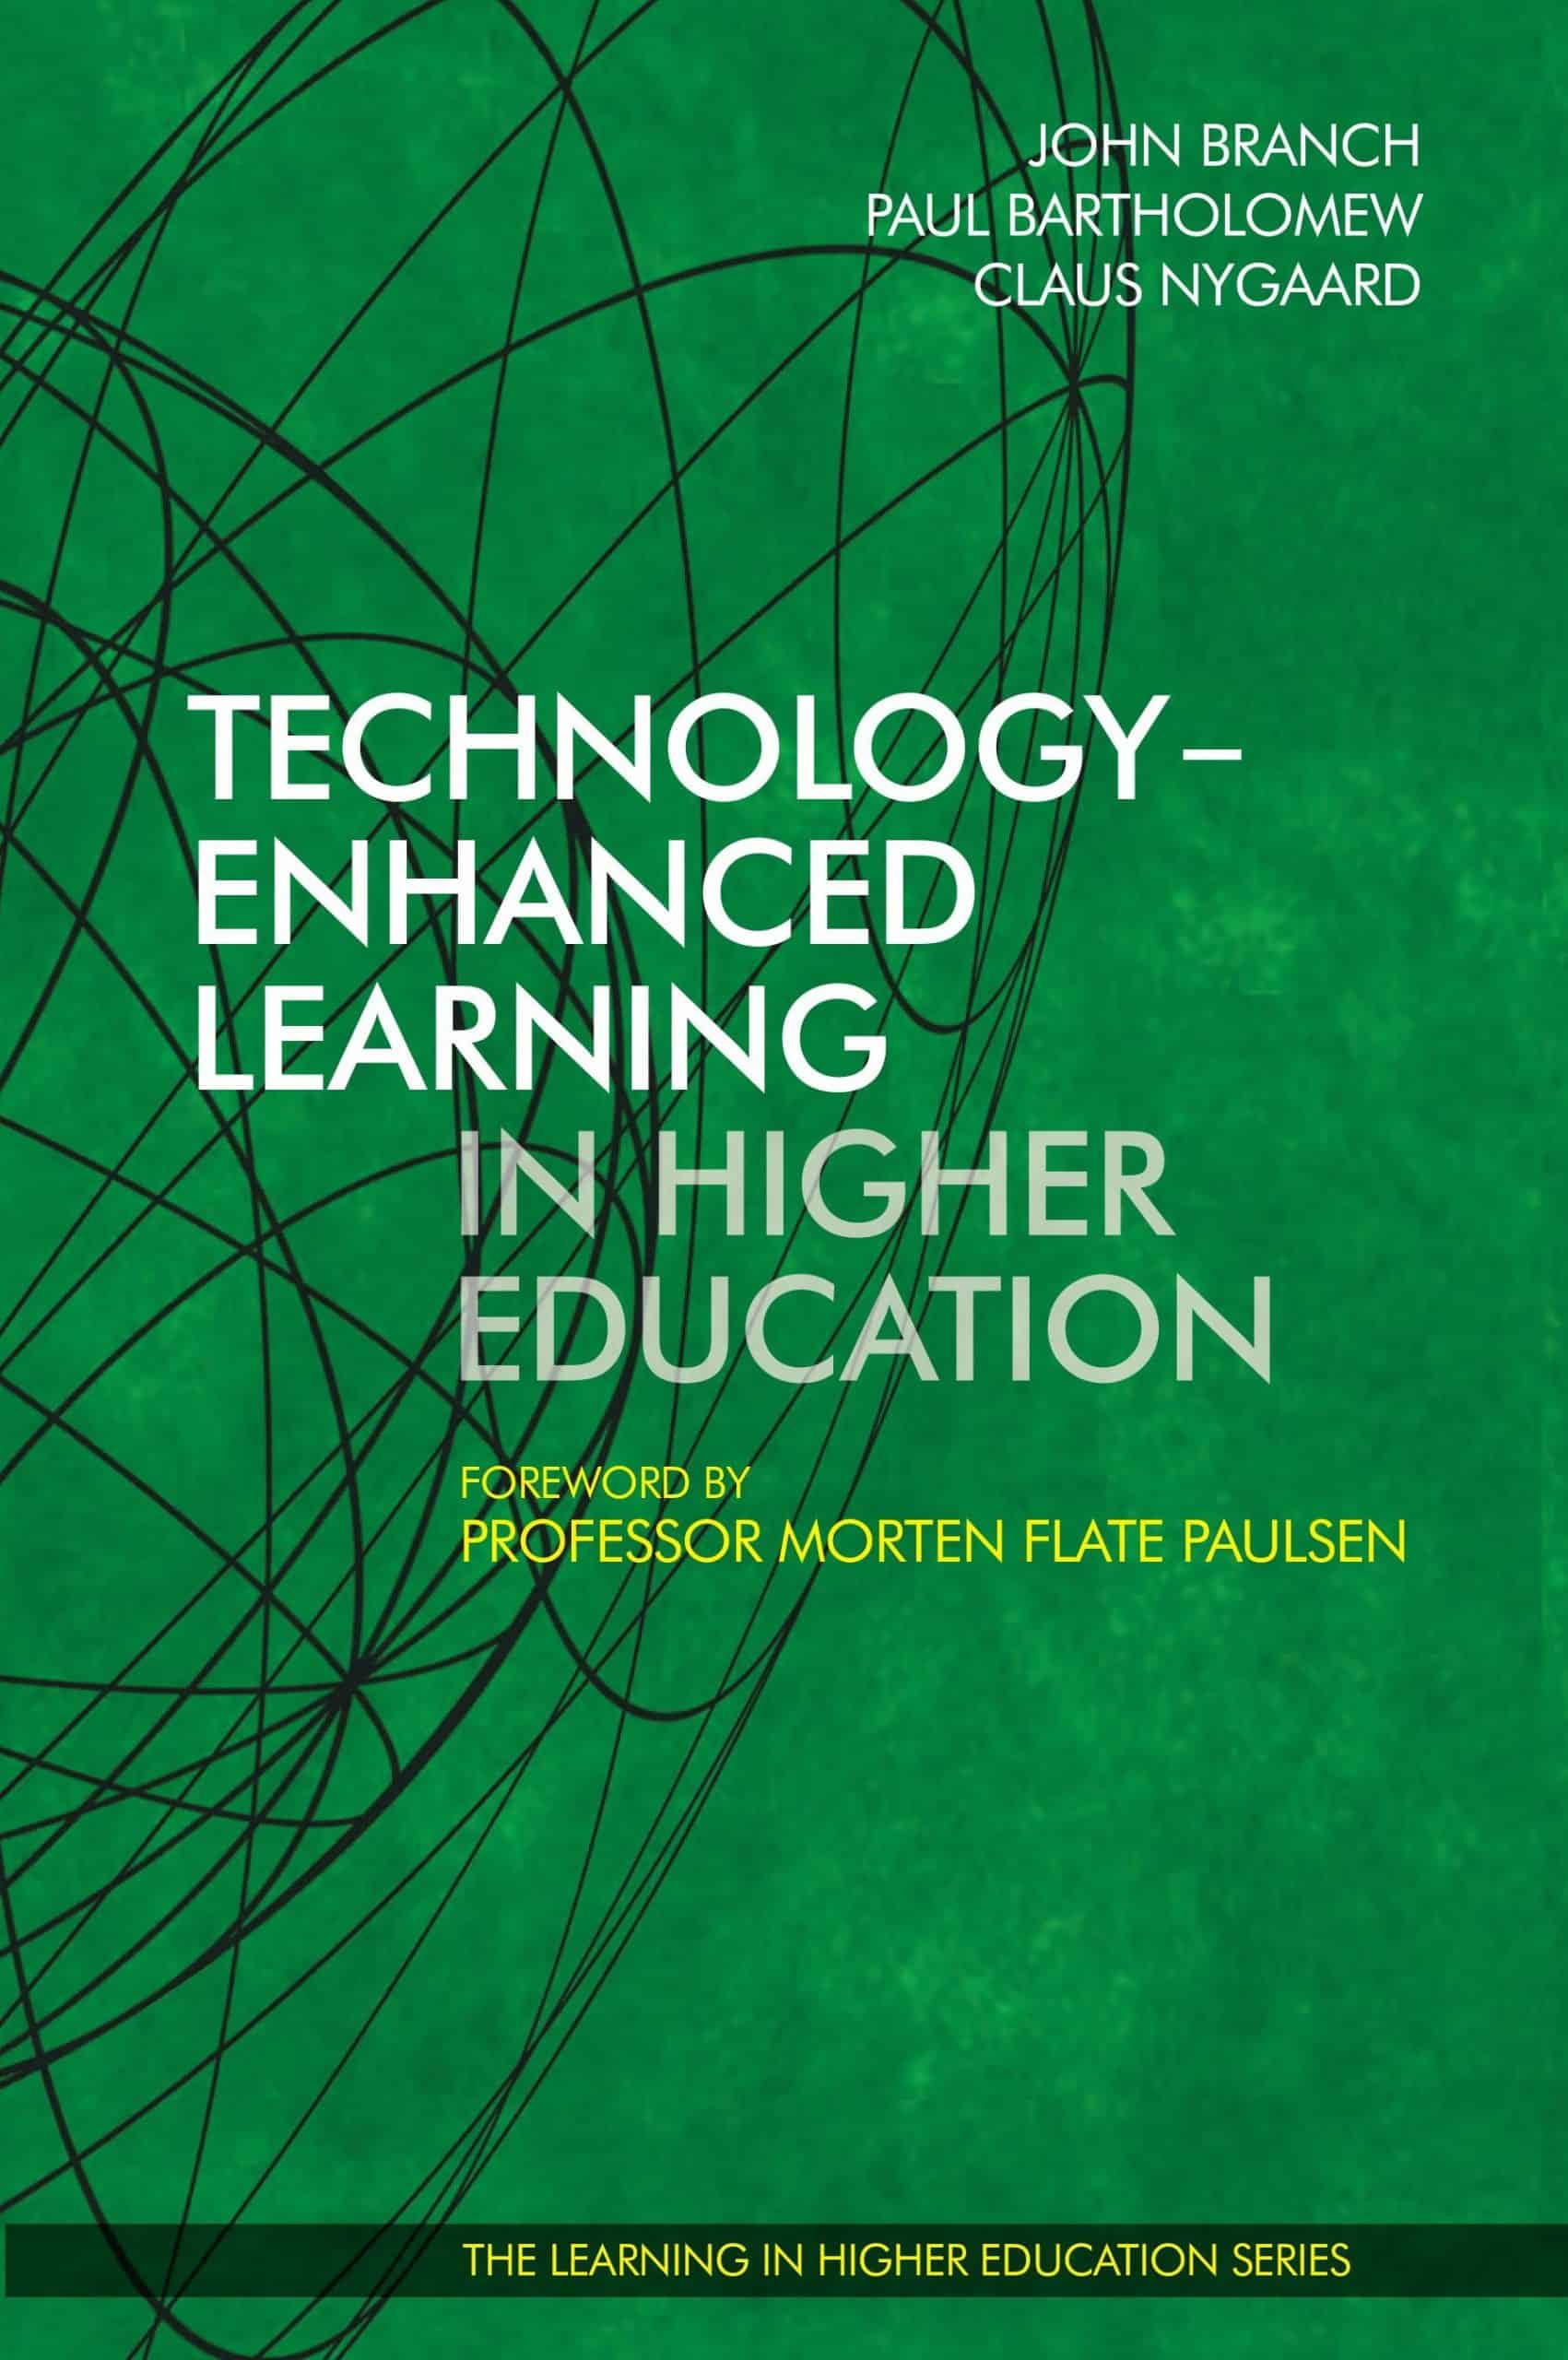 Technology-Enhanced Learning in Higher Education (2015) - John Branch - Paul Bartholomew - Claus Nygaard - Morten Flate Paulsen - Libri Publishing Ltd - Institute for Learning in Higher Education